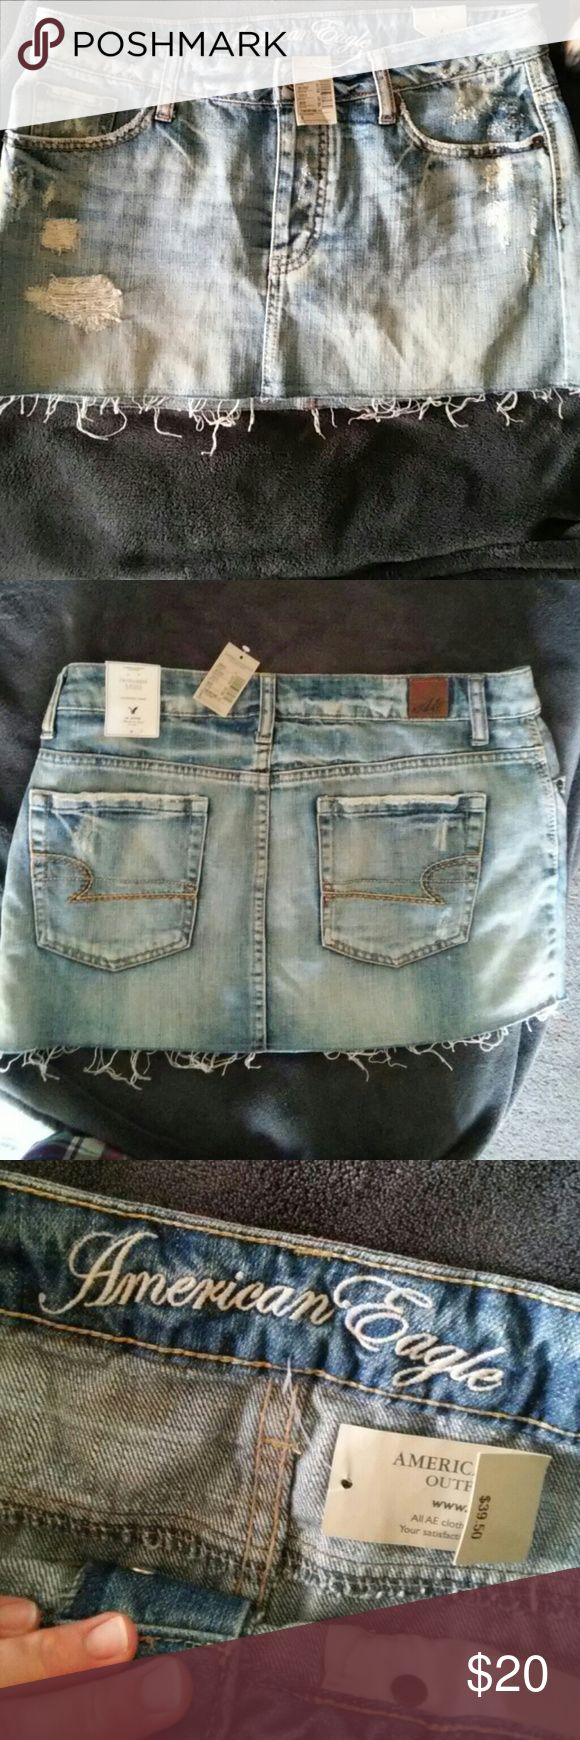 American Eagle Mini Skirt Brand new with tags still in tact (Destroyed Style) American Eagle Outfitters Skirt American Eagle Outfitters Skirts Mini